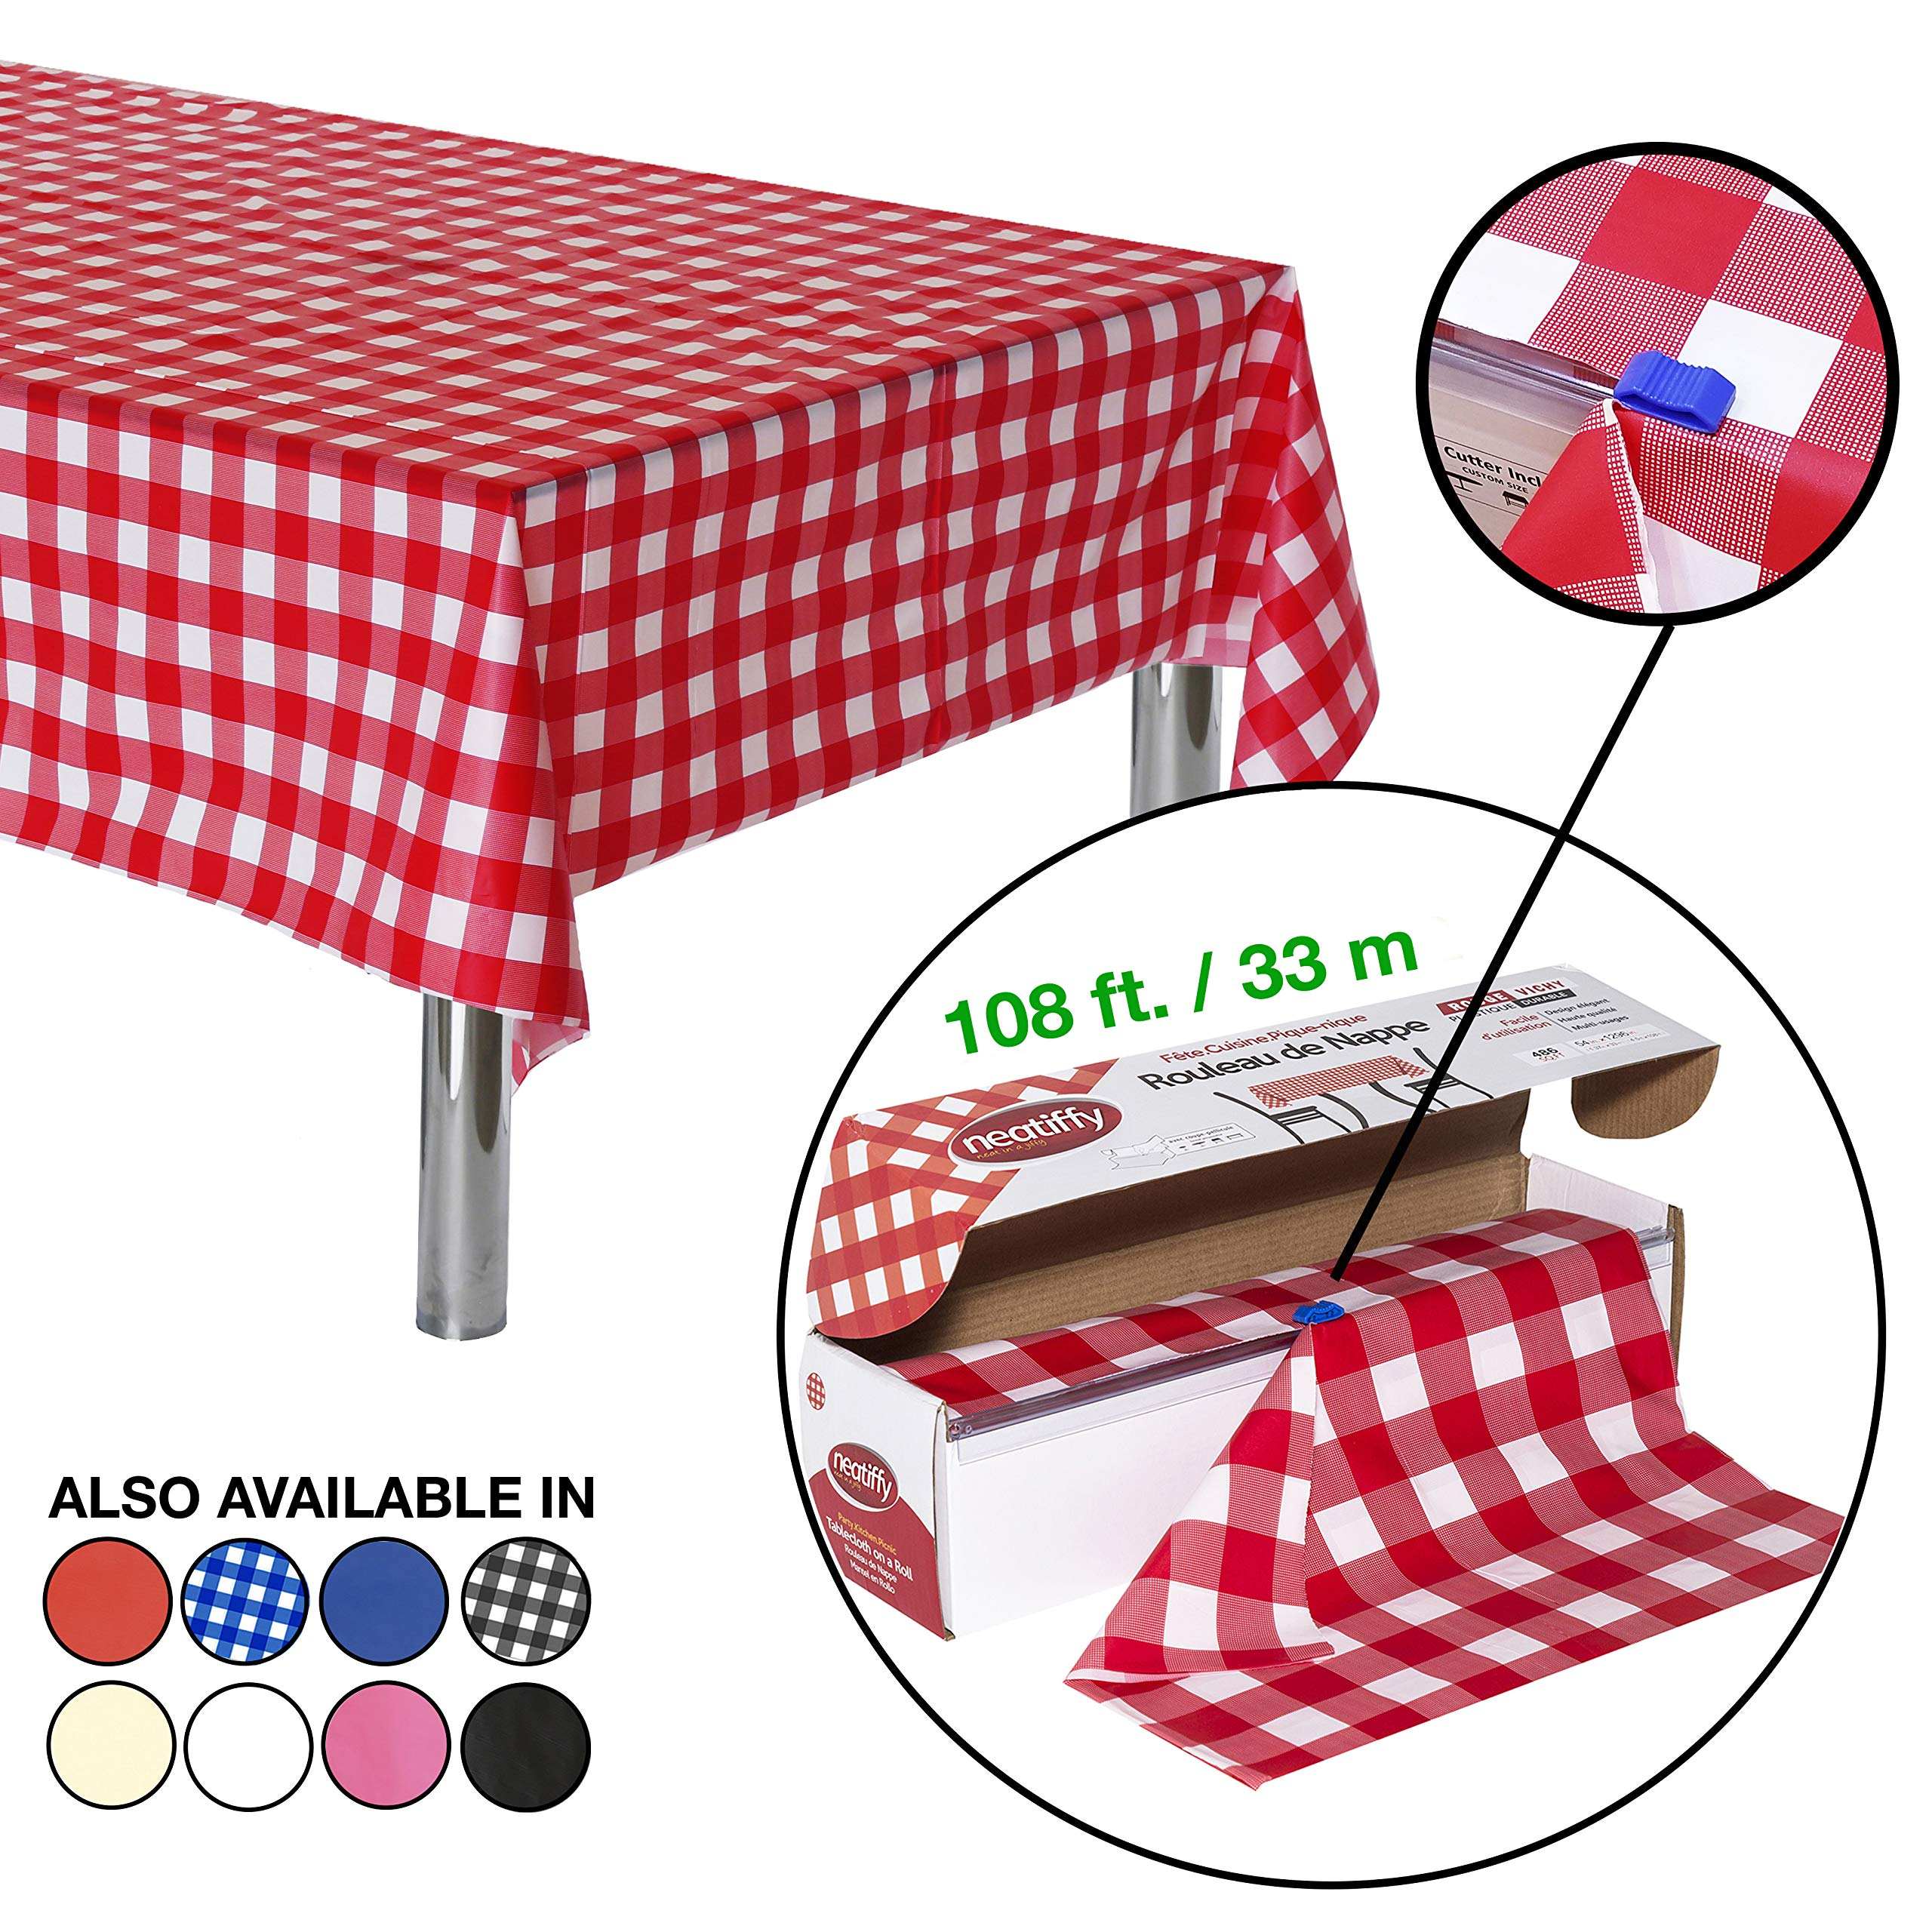 Neatiffy 54 Inch x 108 Feet Thick Plastic Table Cloth Roll Party/Banquet, Durable Table Cover (Reusable/Disposable) Tablecloths for Rectangle/Round/Square Tables, 12 Picnic Pack (Red Checkered) by Neatiffy